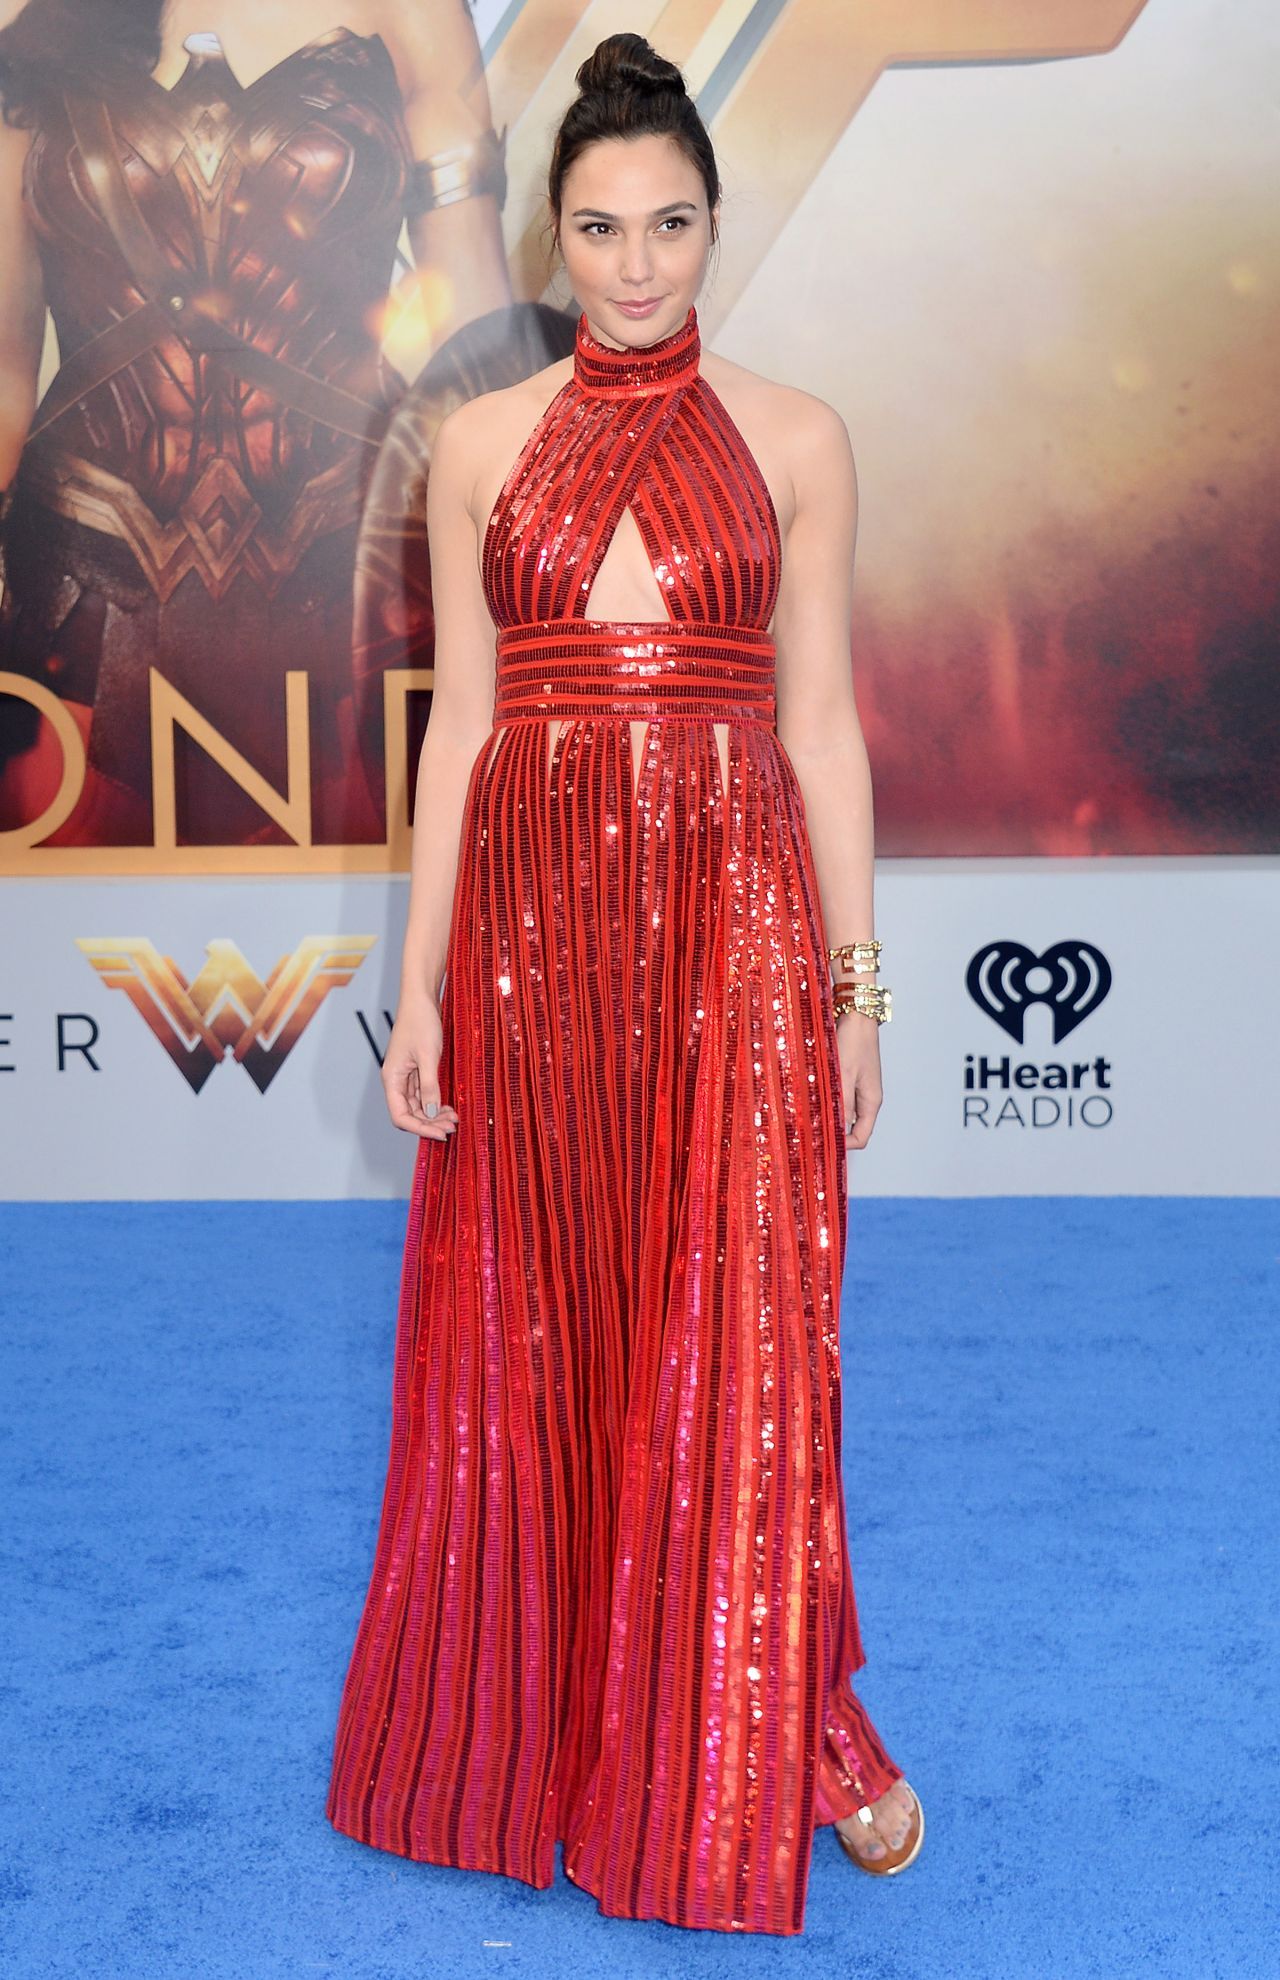 http://celebmafia.com/wp-content/uploads/2017/05/gal-gadot-on-red-carpet-wonder-woman-movie-premiere-in-los-angeles-05-25-2017-11.jpg